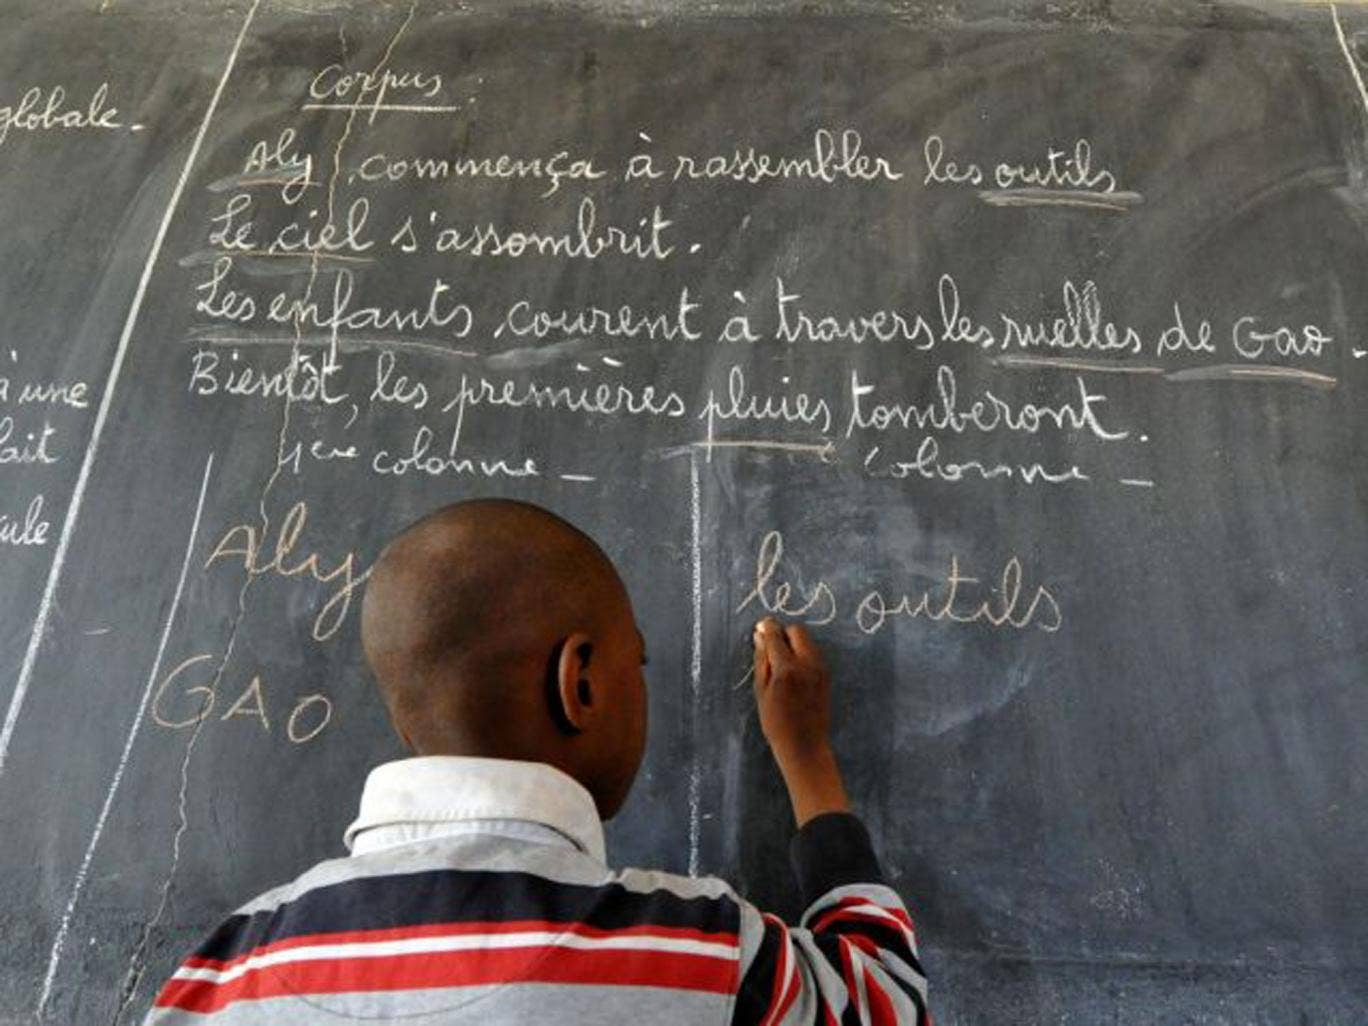 A child writes in French on a classic classroom blackboard